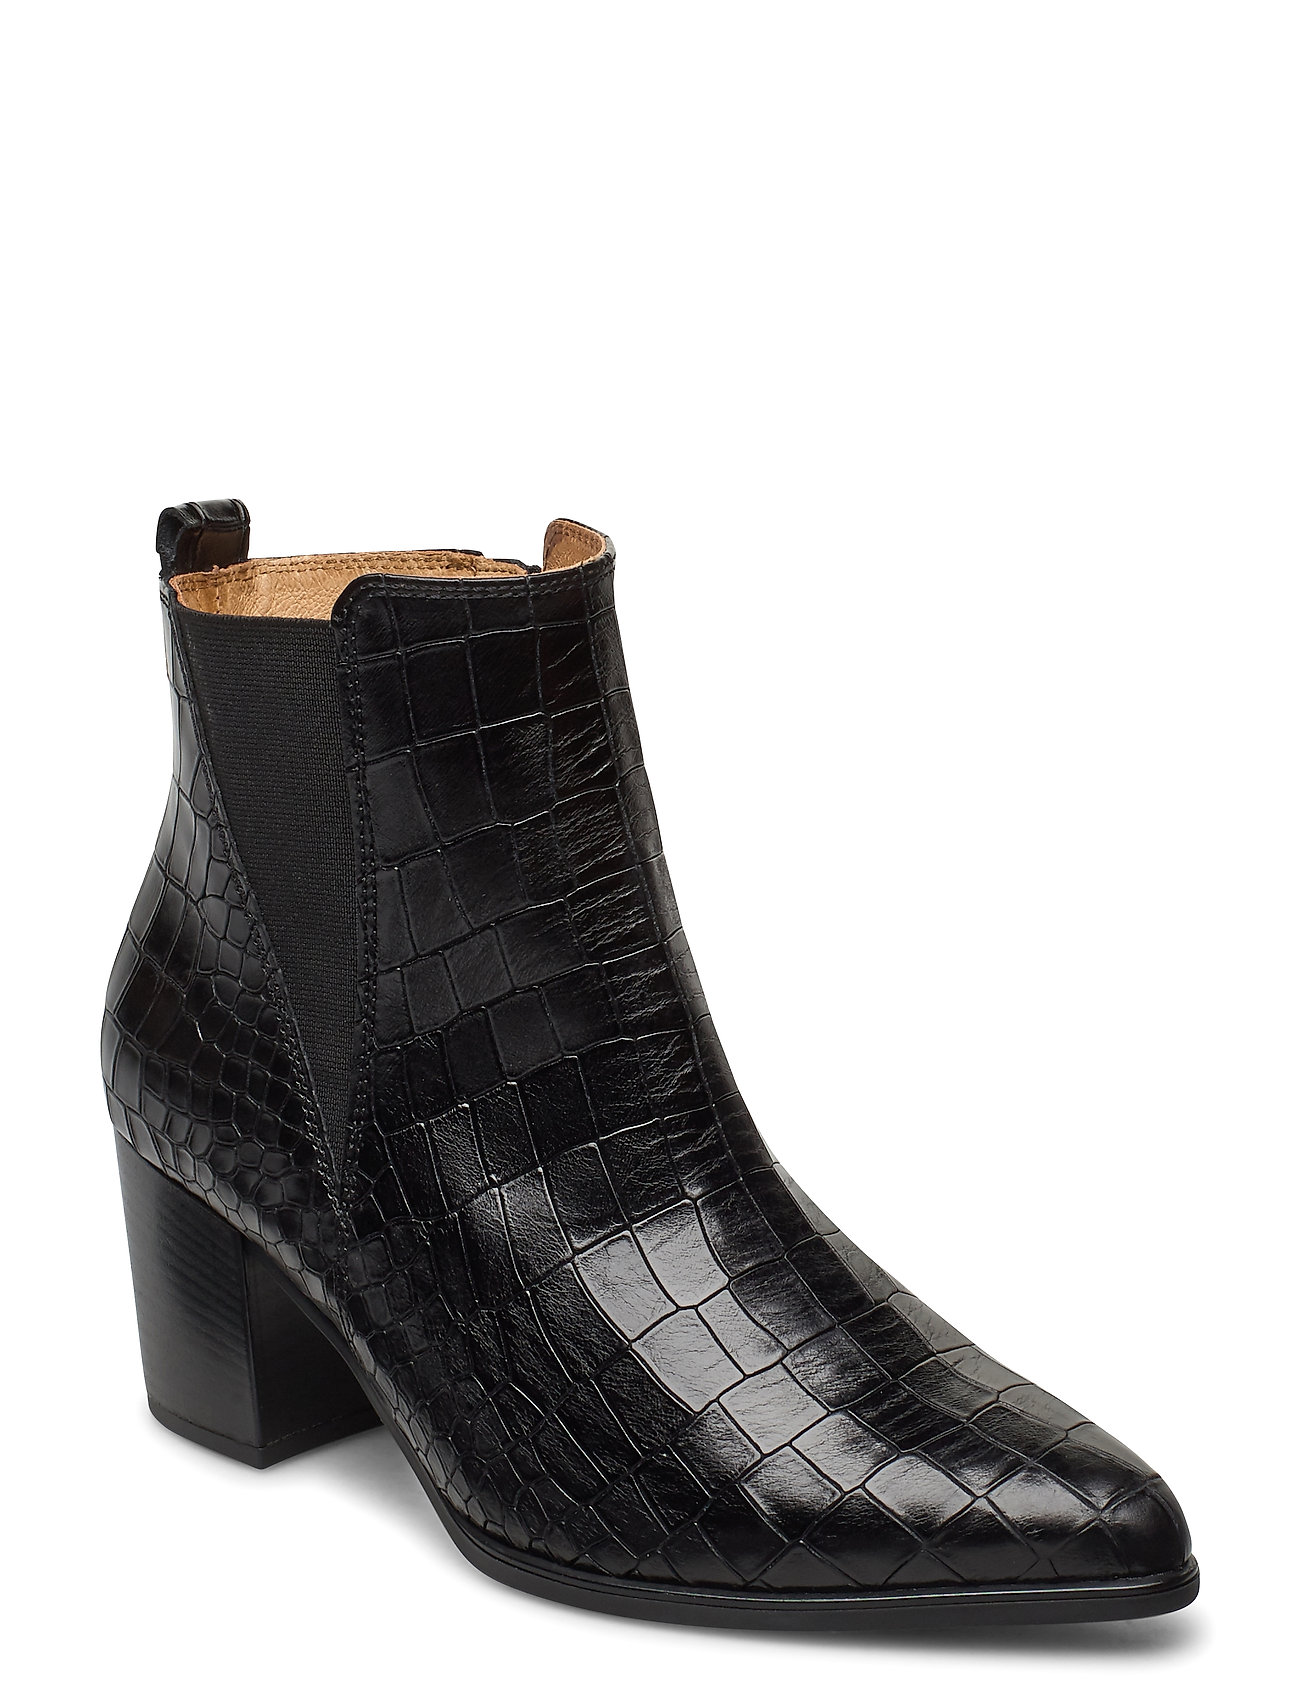 Image of Ankle Boot Shoes Boots Ankle Boots Ankle Boot - Heel Sort Gabor (3436044243)